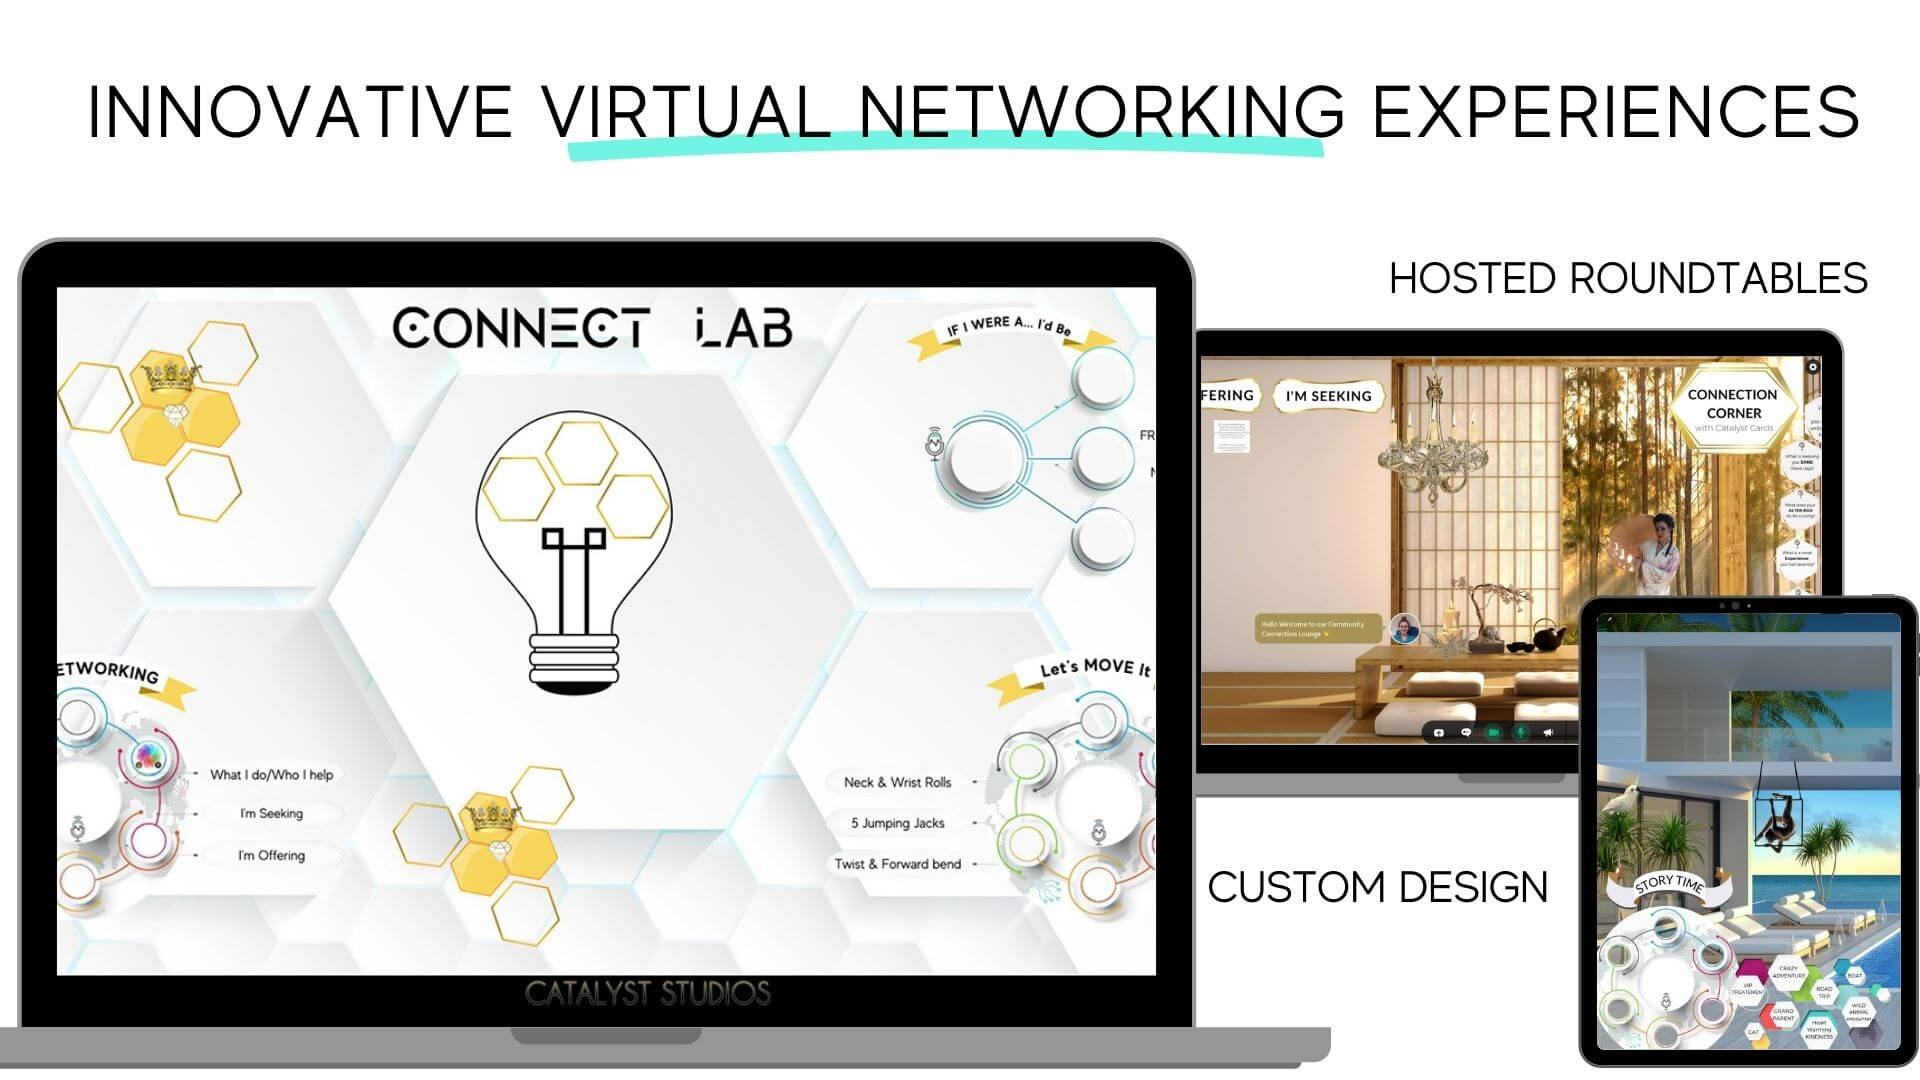 The Connect Lab = innovative virtual networking experiences by Audette at Catalyst Studios